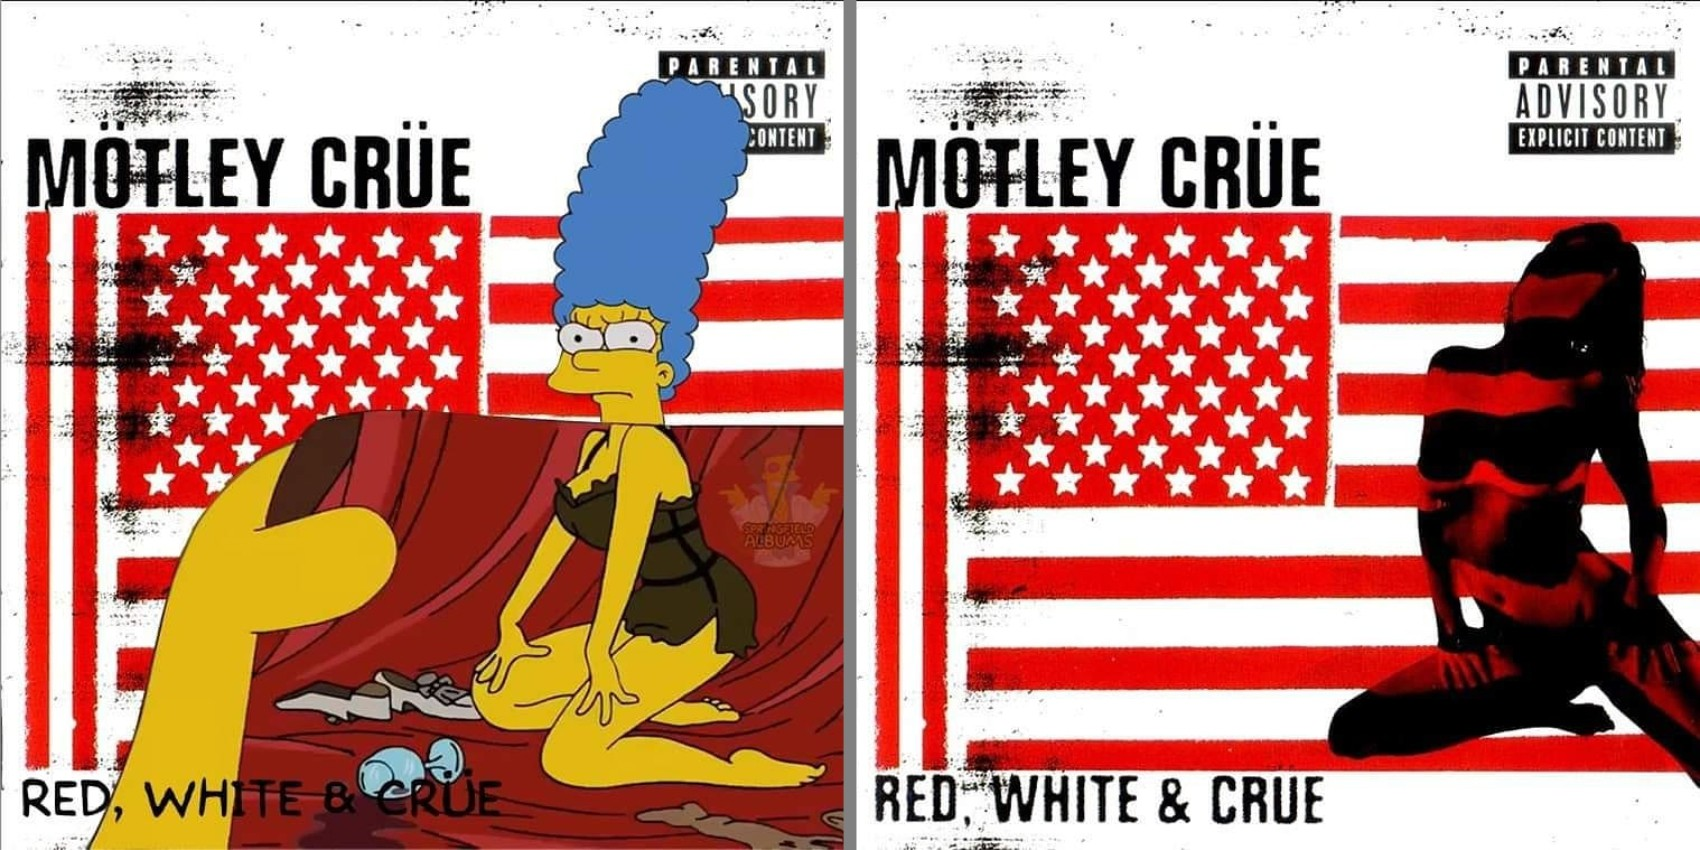 Motley - Crue Red White & Crue (2005)